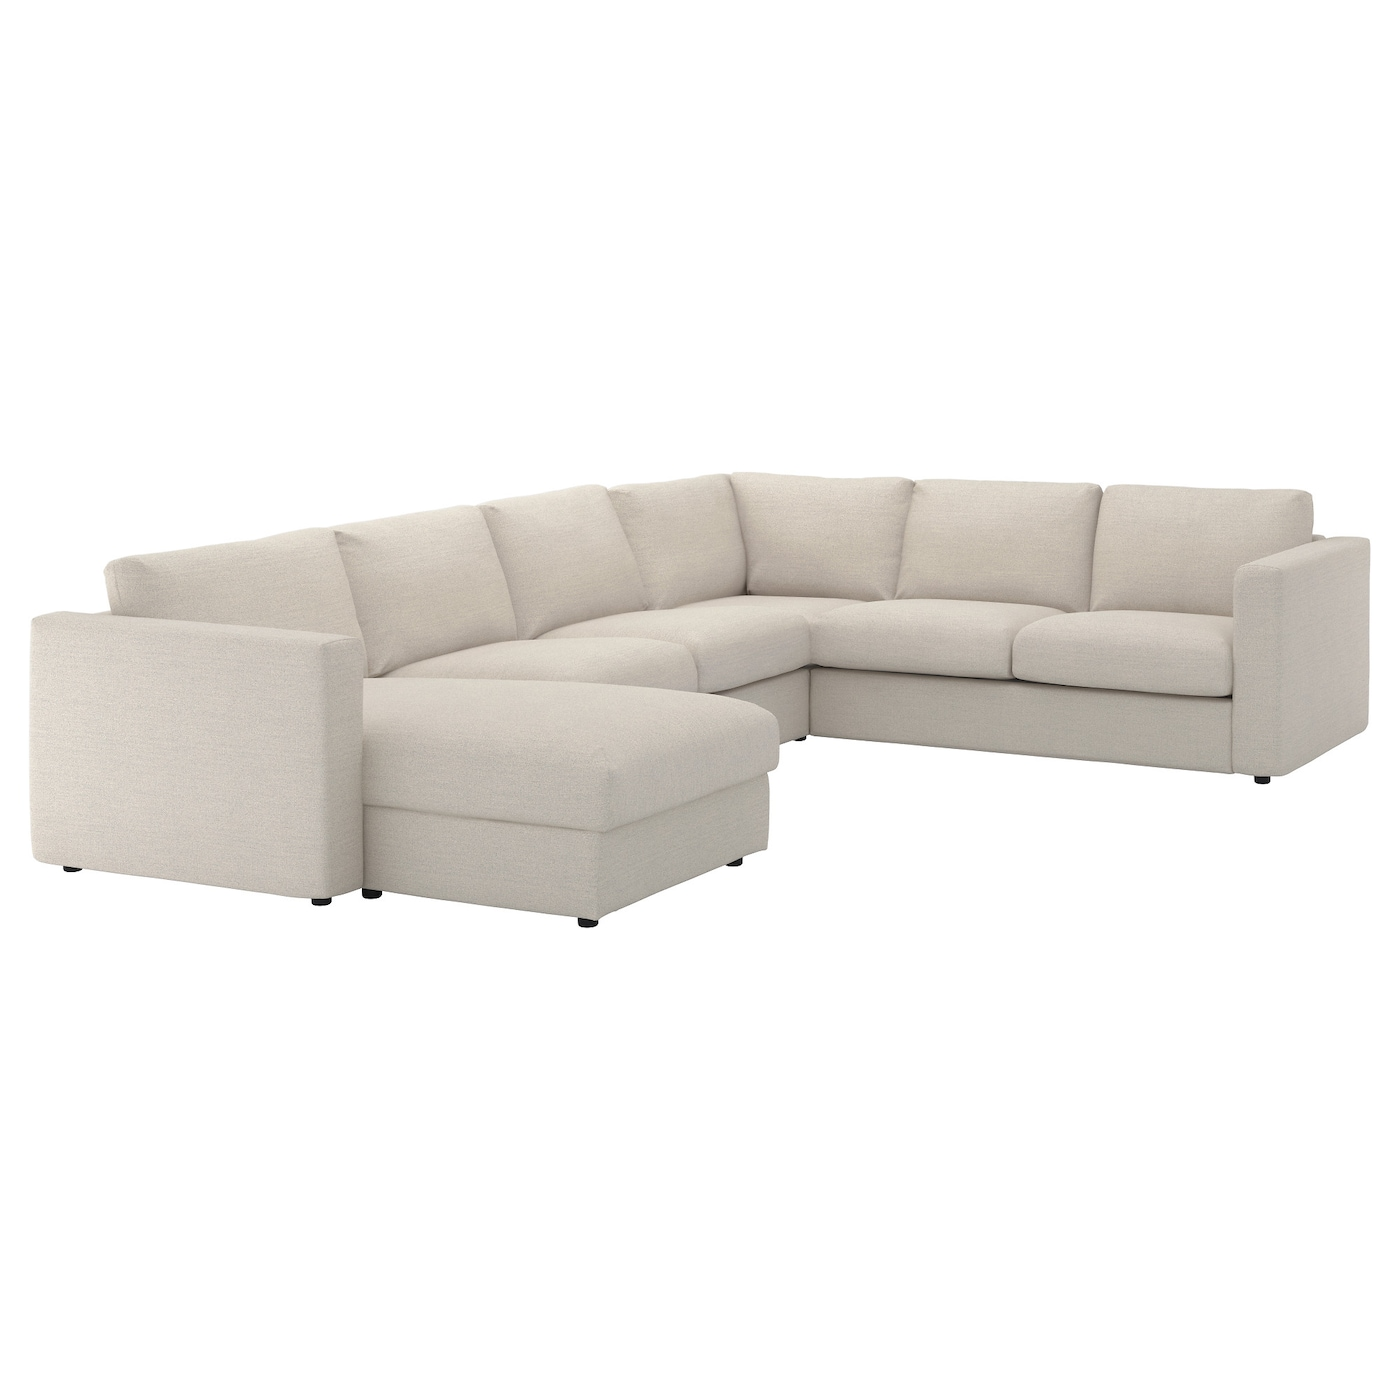 Vimle corner sofa 5 seat with chaise longue gunnared for 5 seater sofa with chaise